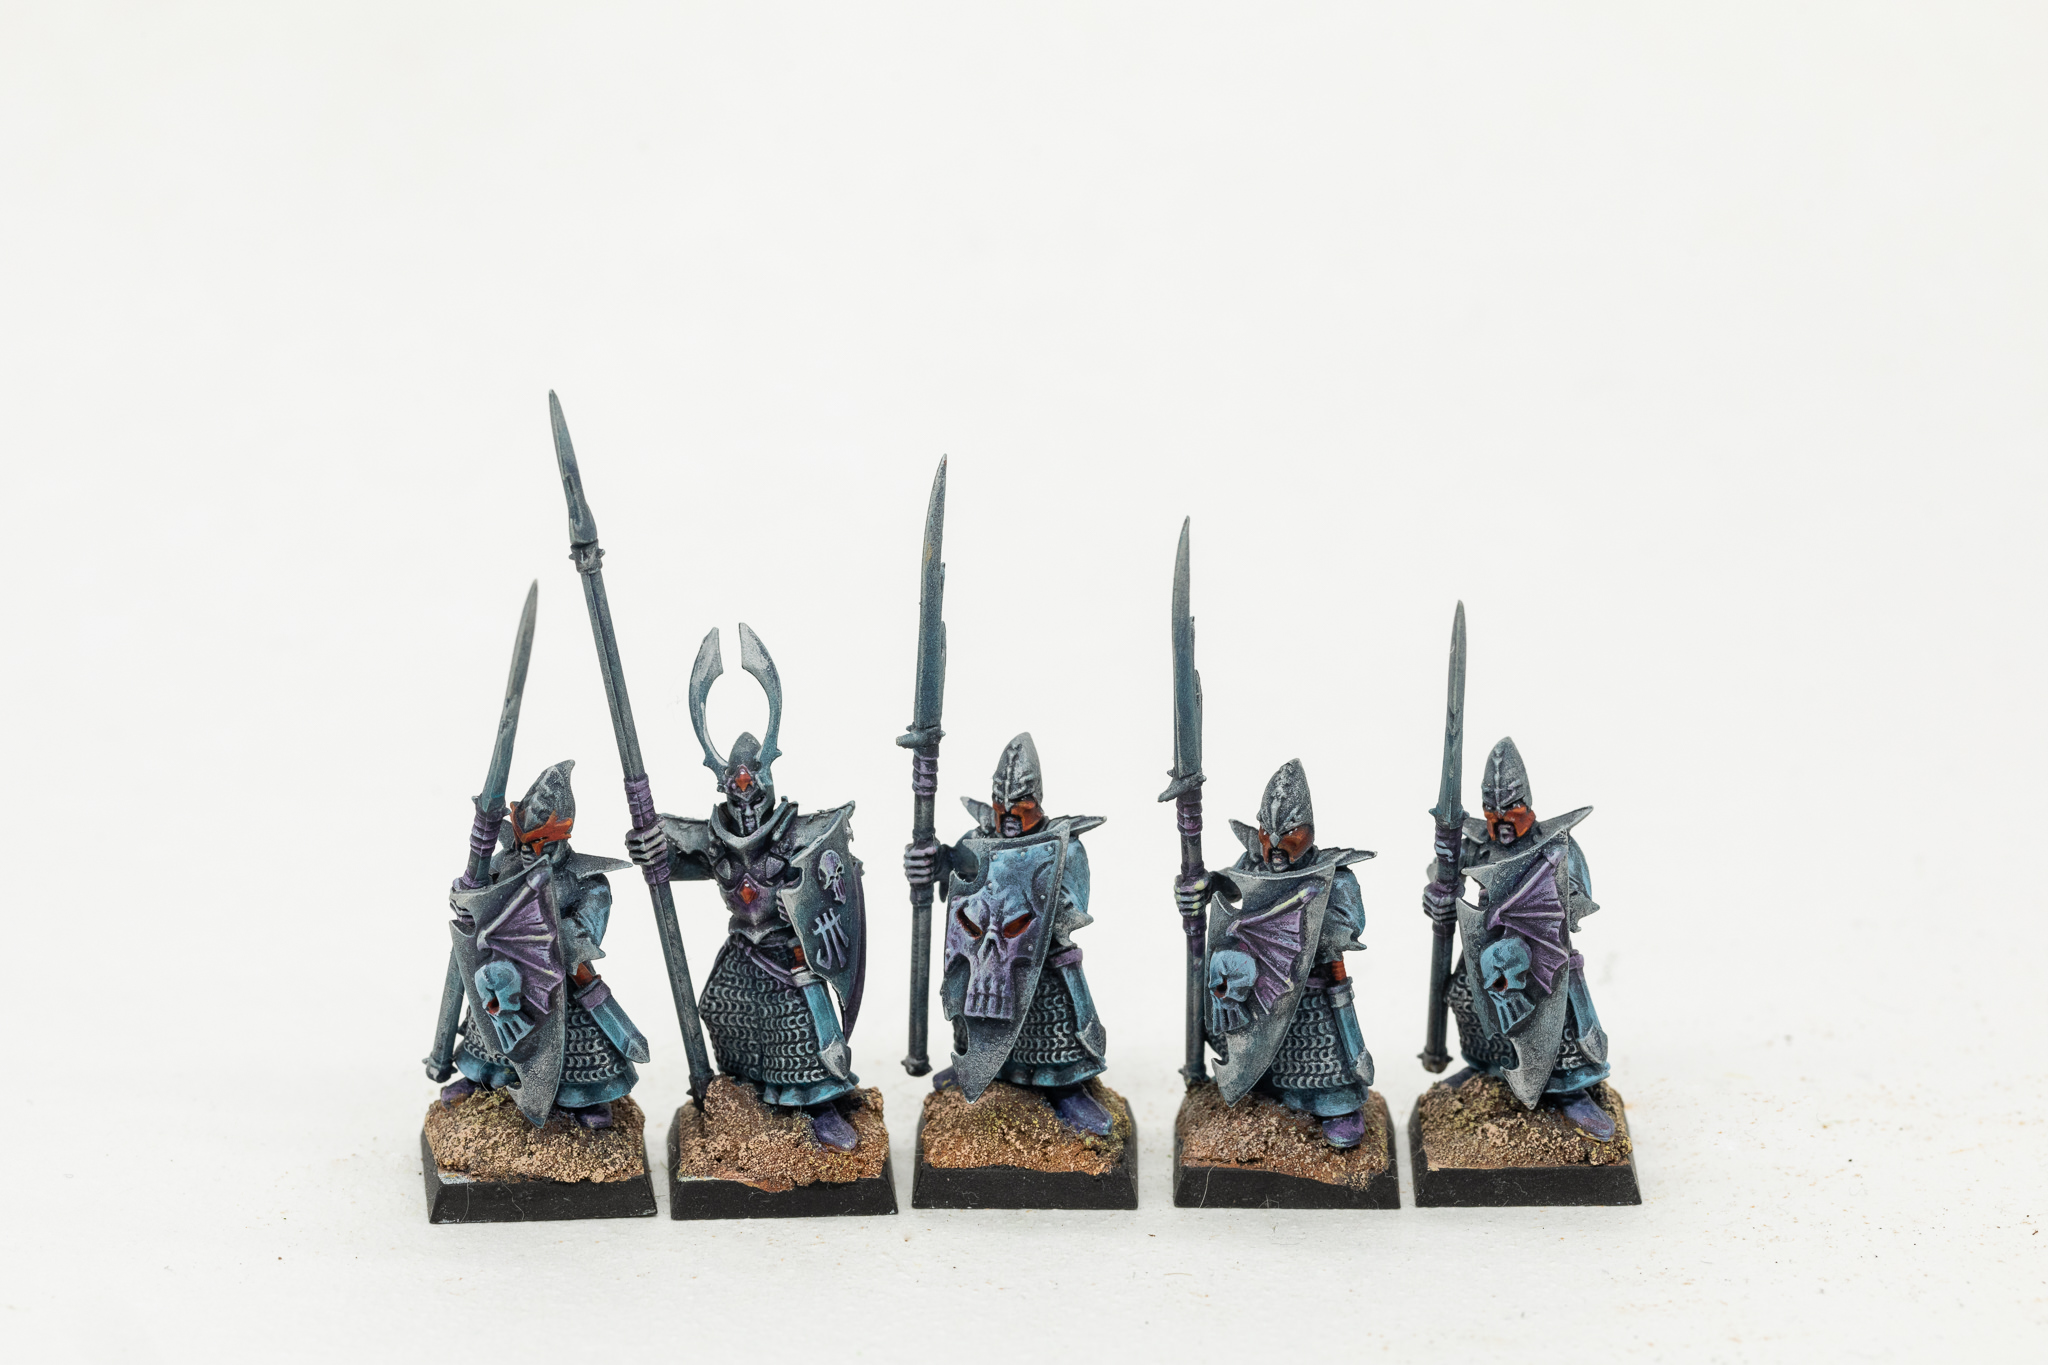 vente-figurines-elfesnoirs0019.jpg